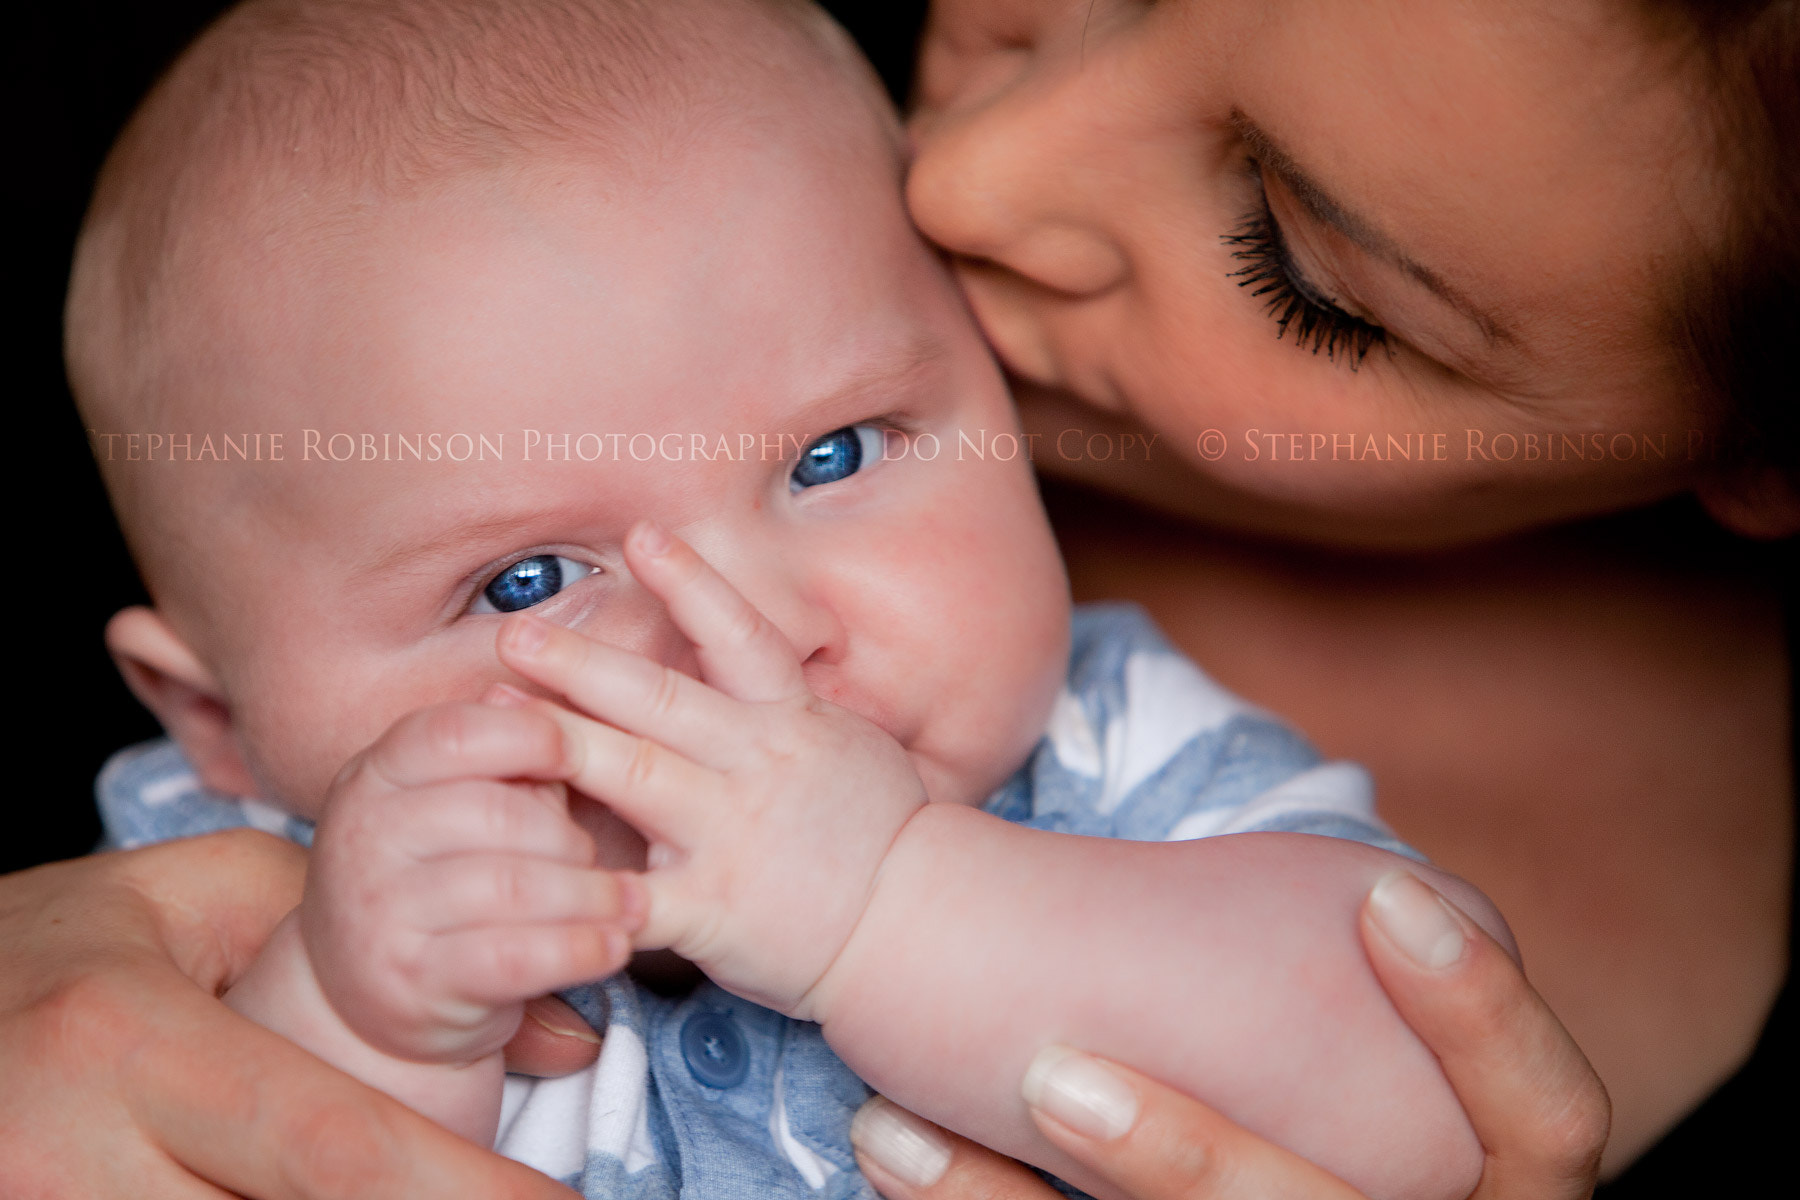 Photograph Mother and Baby Boy by Stephanie Robinson on 500px